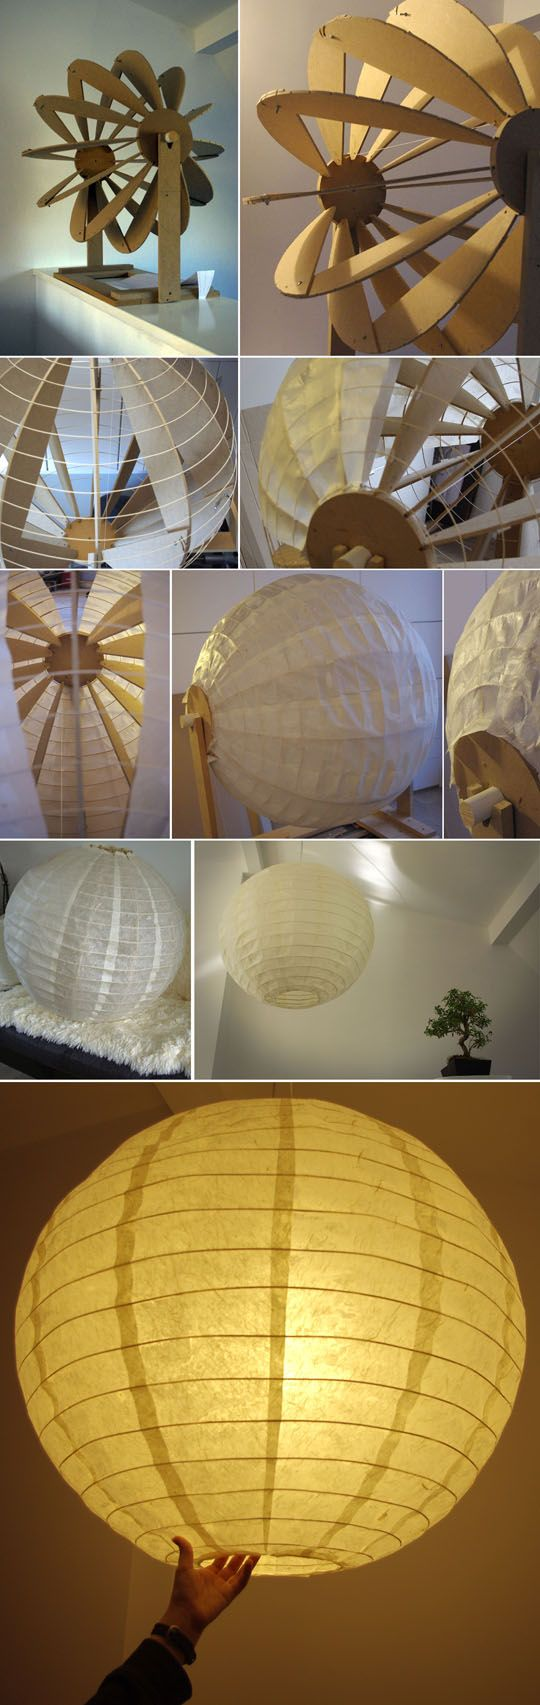 How to build your own big paper lamp, similar to the ones by Isamu Noguchi.